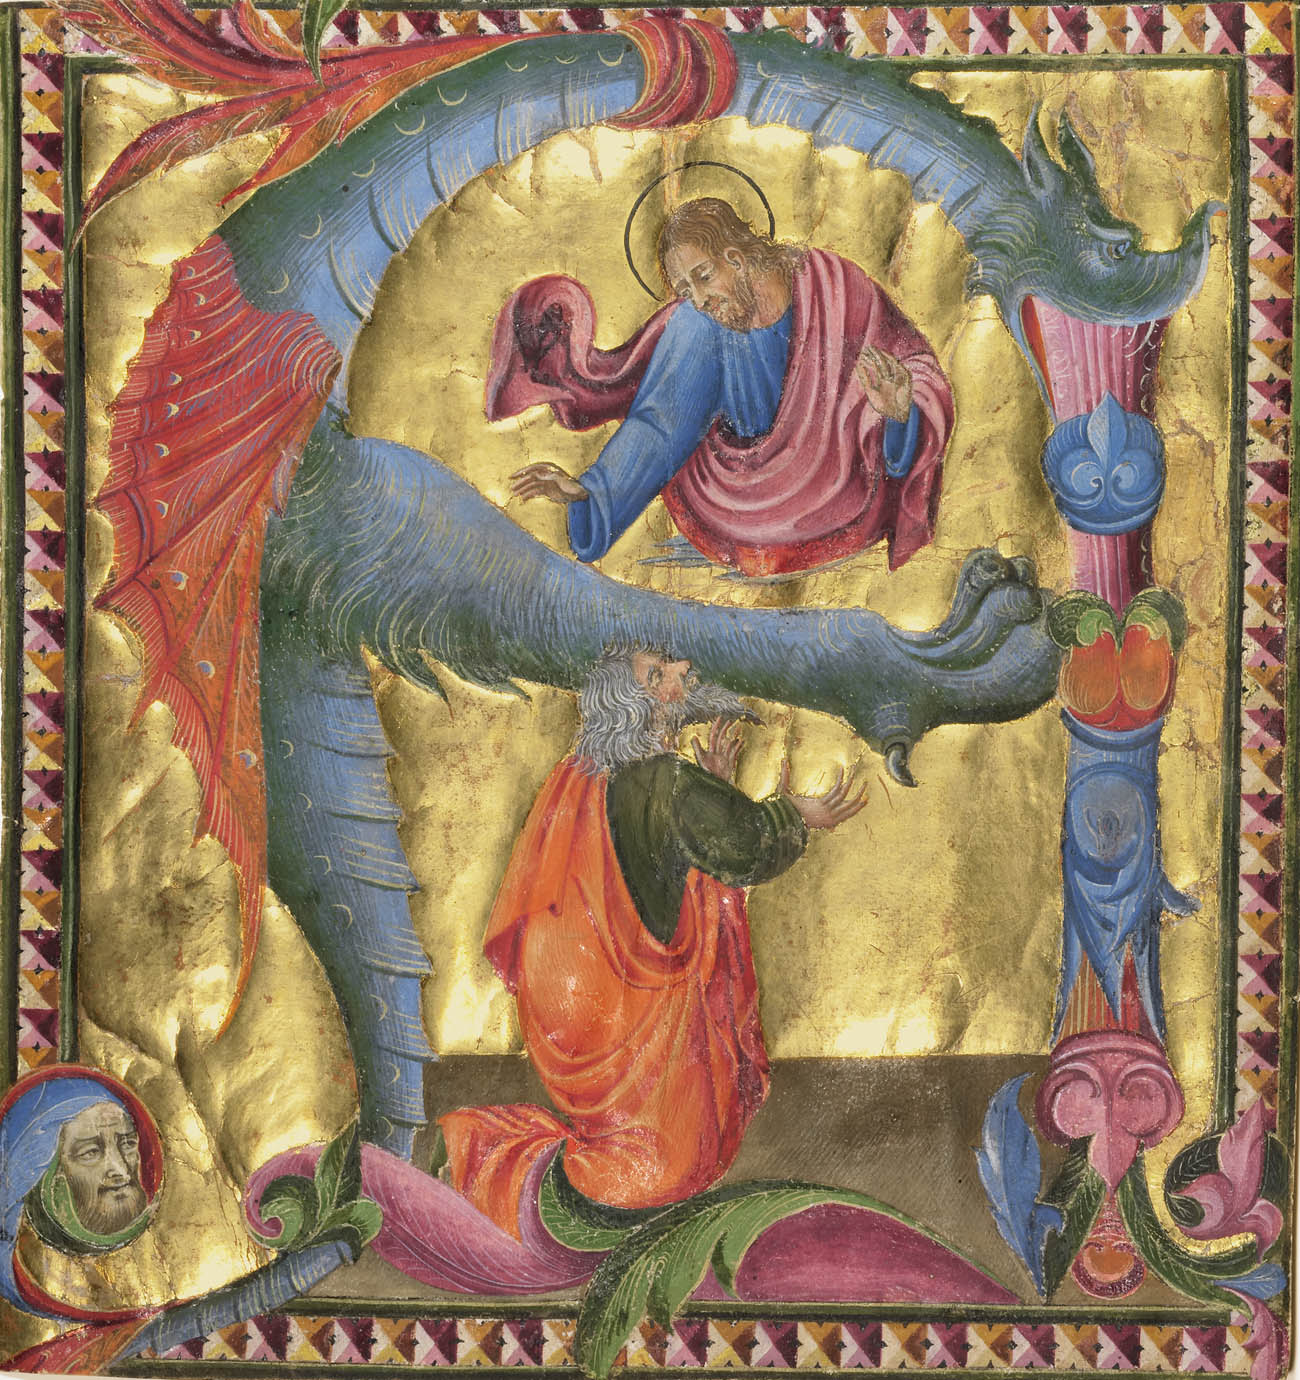 Christ hovers above a kneeling David in an illuminated frame circled by a dragon